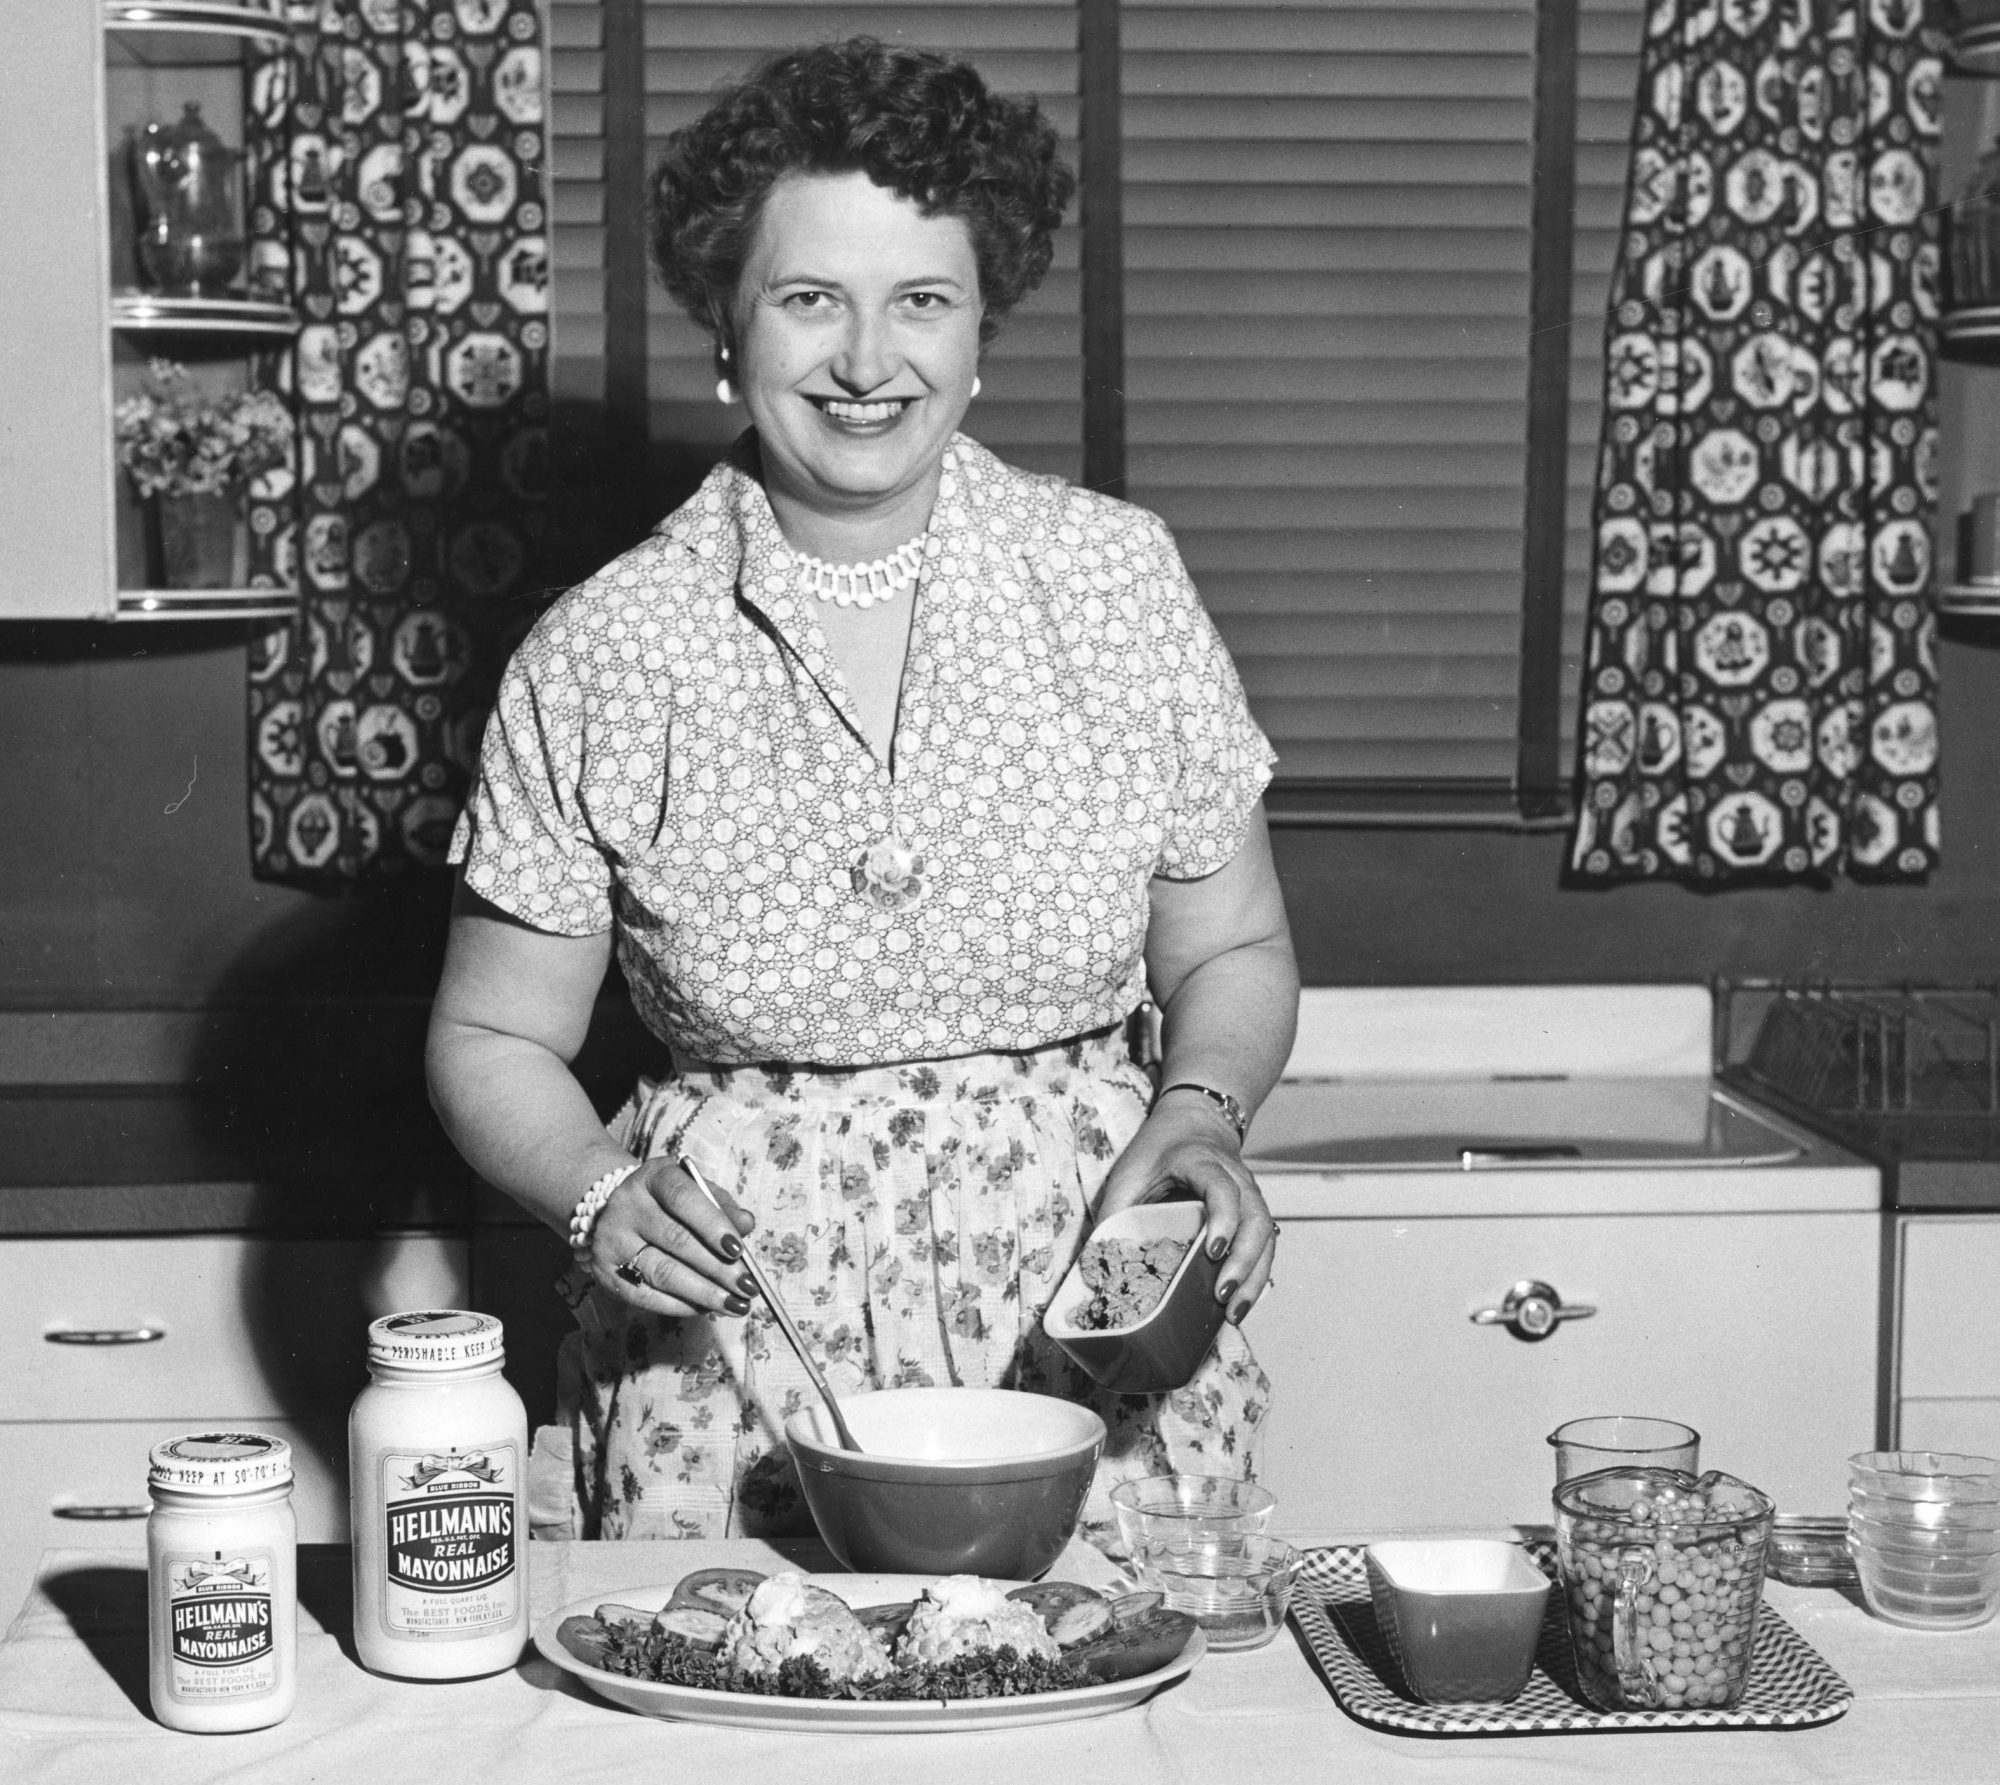 The History of Hellmann's Mayonnaise